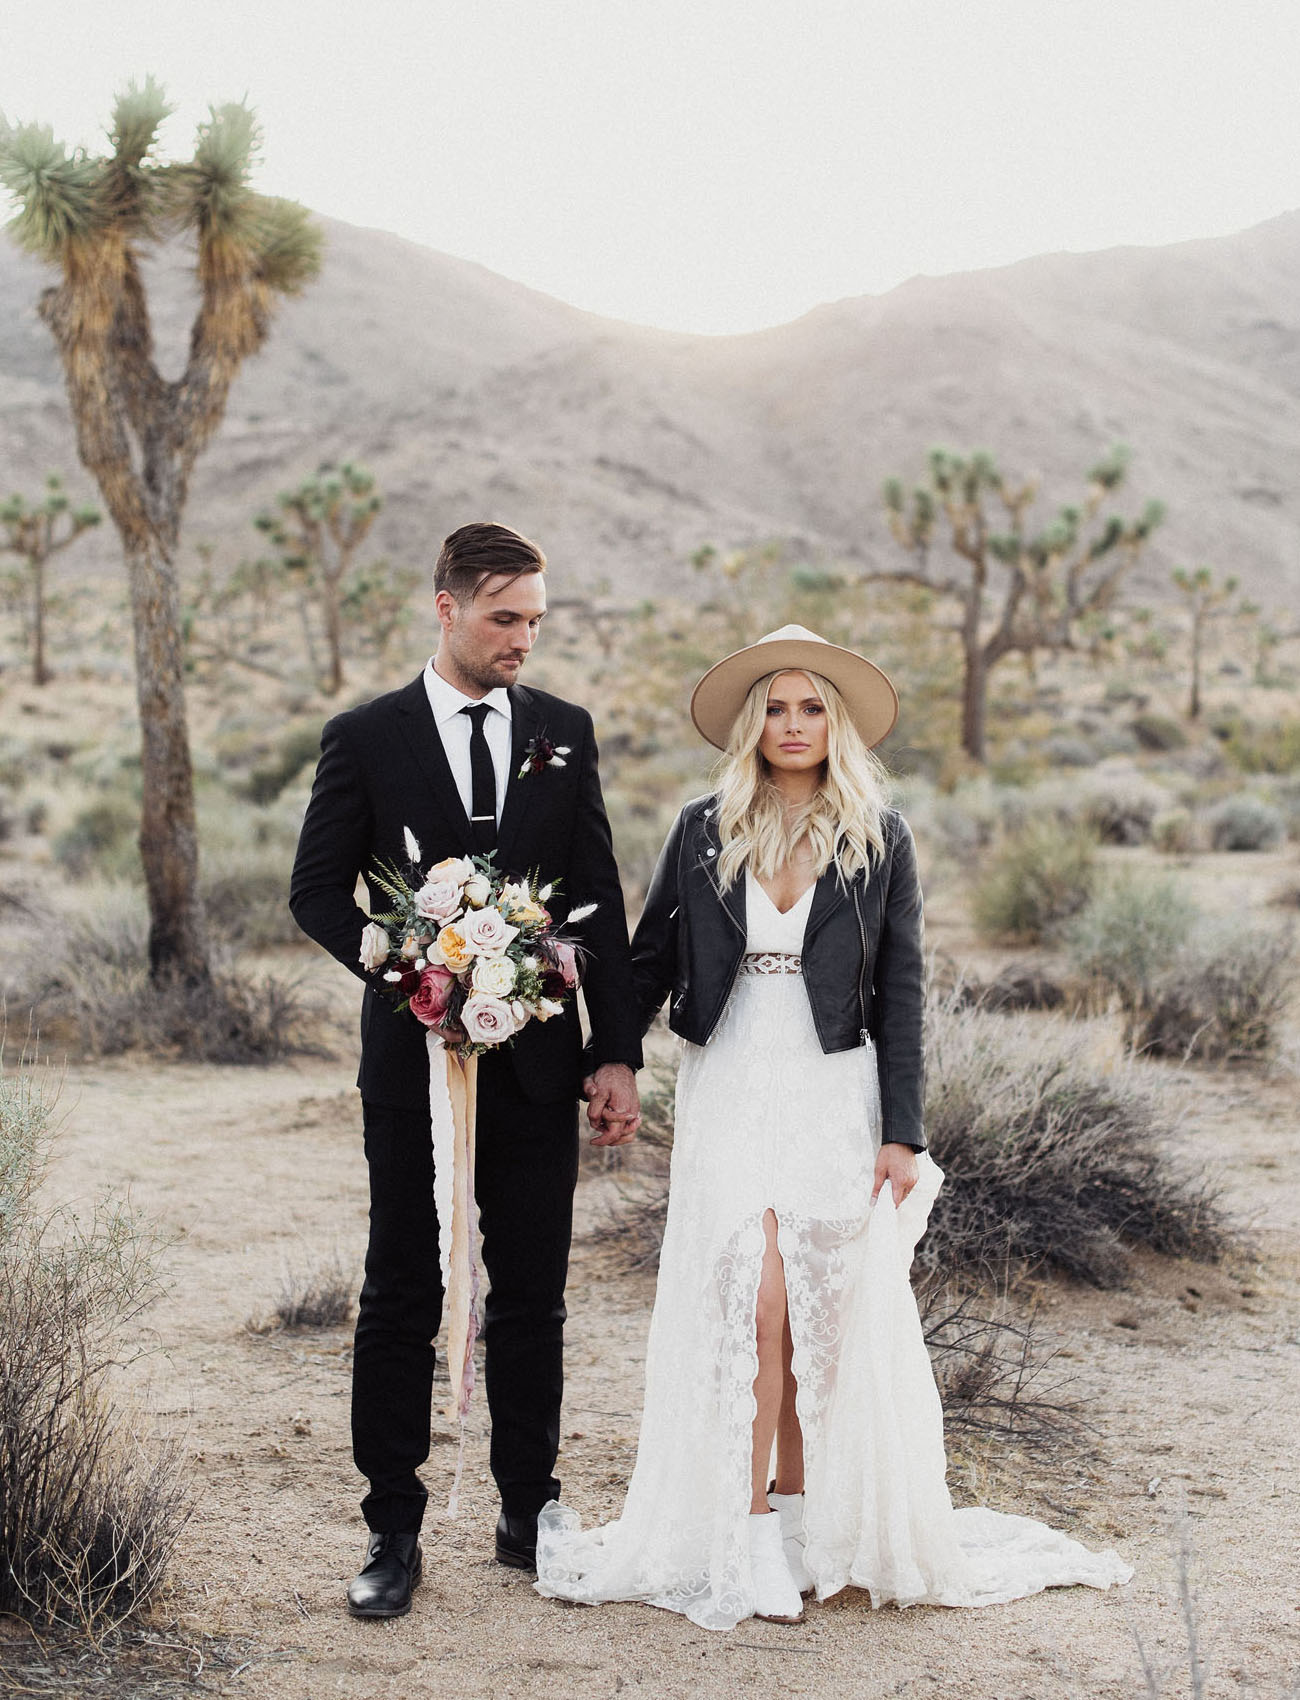 From Bridal Hats To Pampas Grass To Starry Designs This Joshua